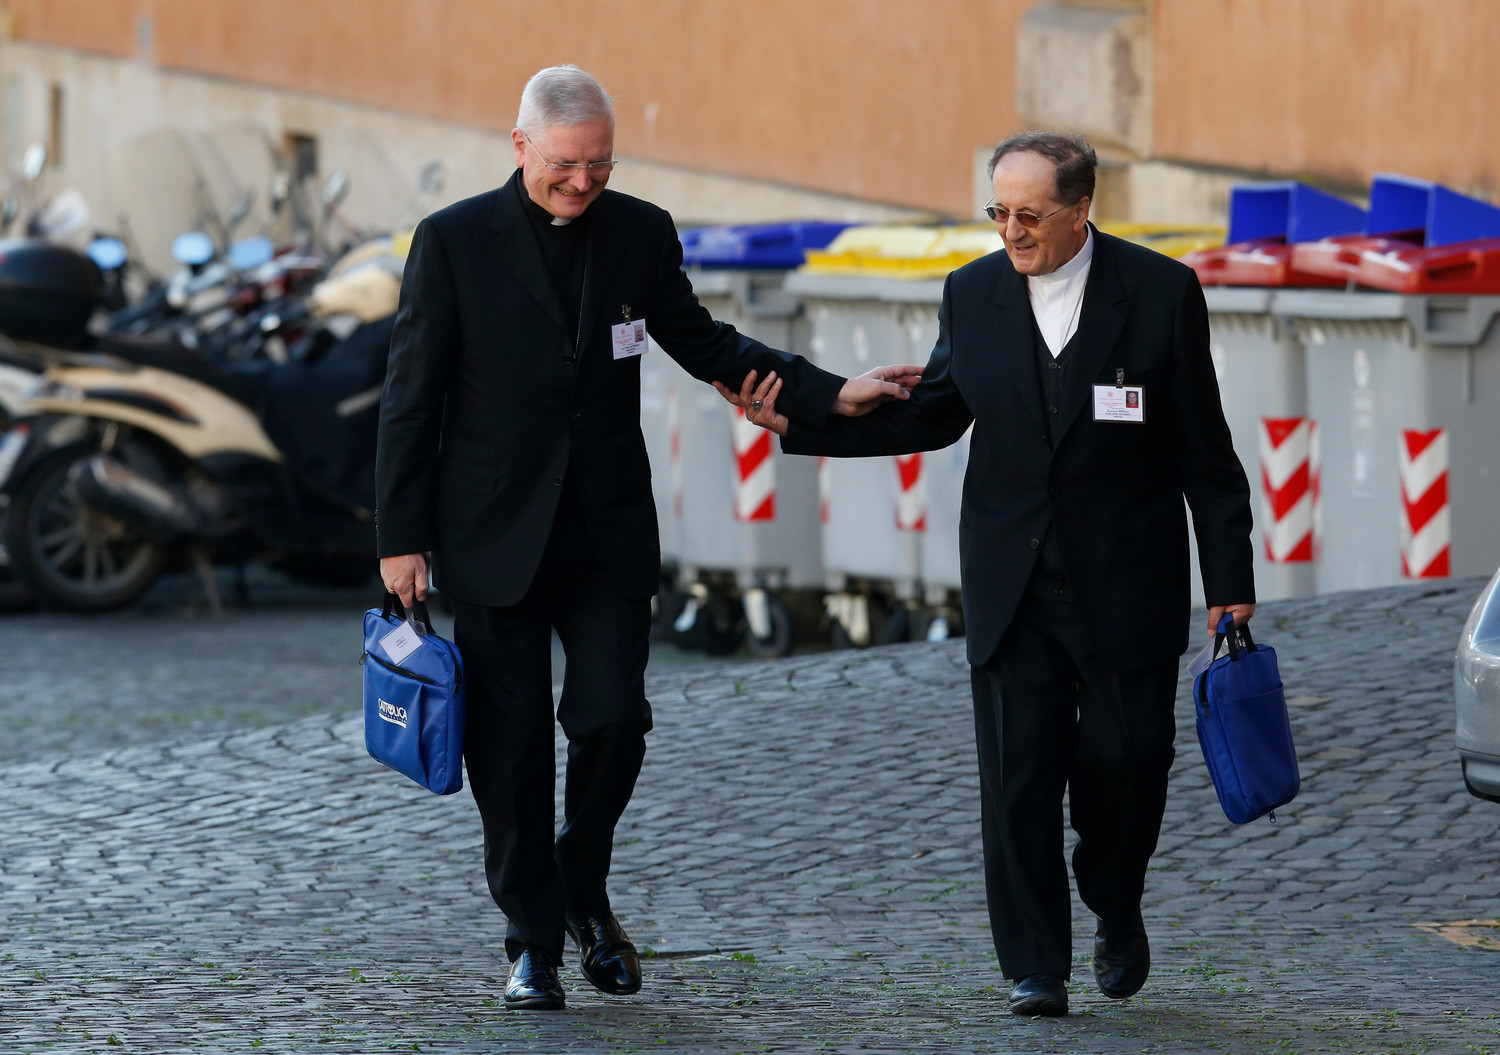 "Archbishop Leo Cushley of St. Andrews and Edinburgh, Scotland, and Cardinal Beniamino Stella, prefect of the Congregation for Clergy, exchange greetings as they walk to a session of the Synod of Bishops on young people, the faith and vocational discernment at the Vatican Oct. 8. In his speech at the synod, Cardinal Stella warned of the phenomenon of ""wandering seminarians"" who move from one diocese to another."